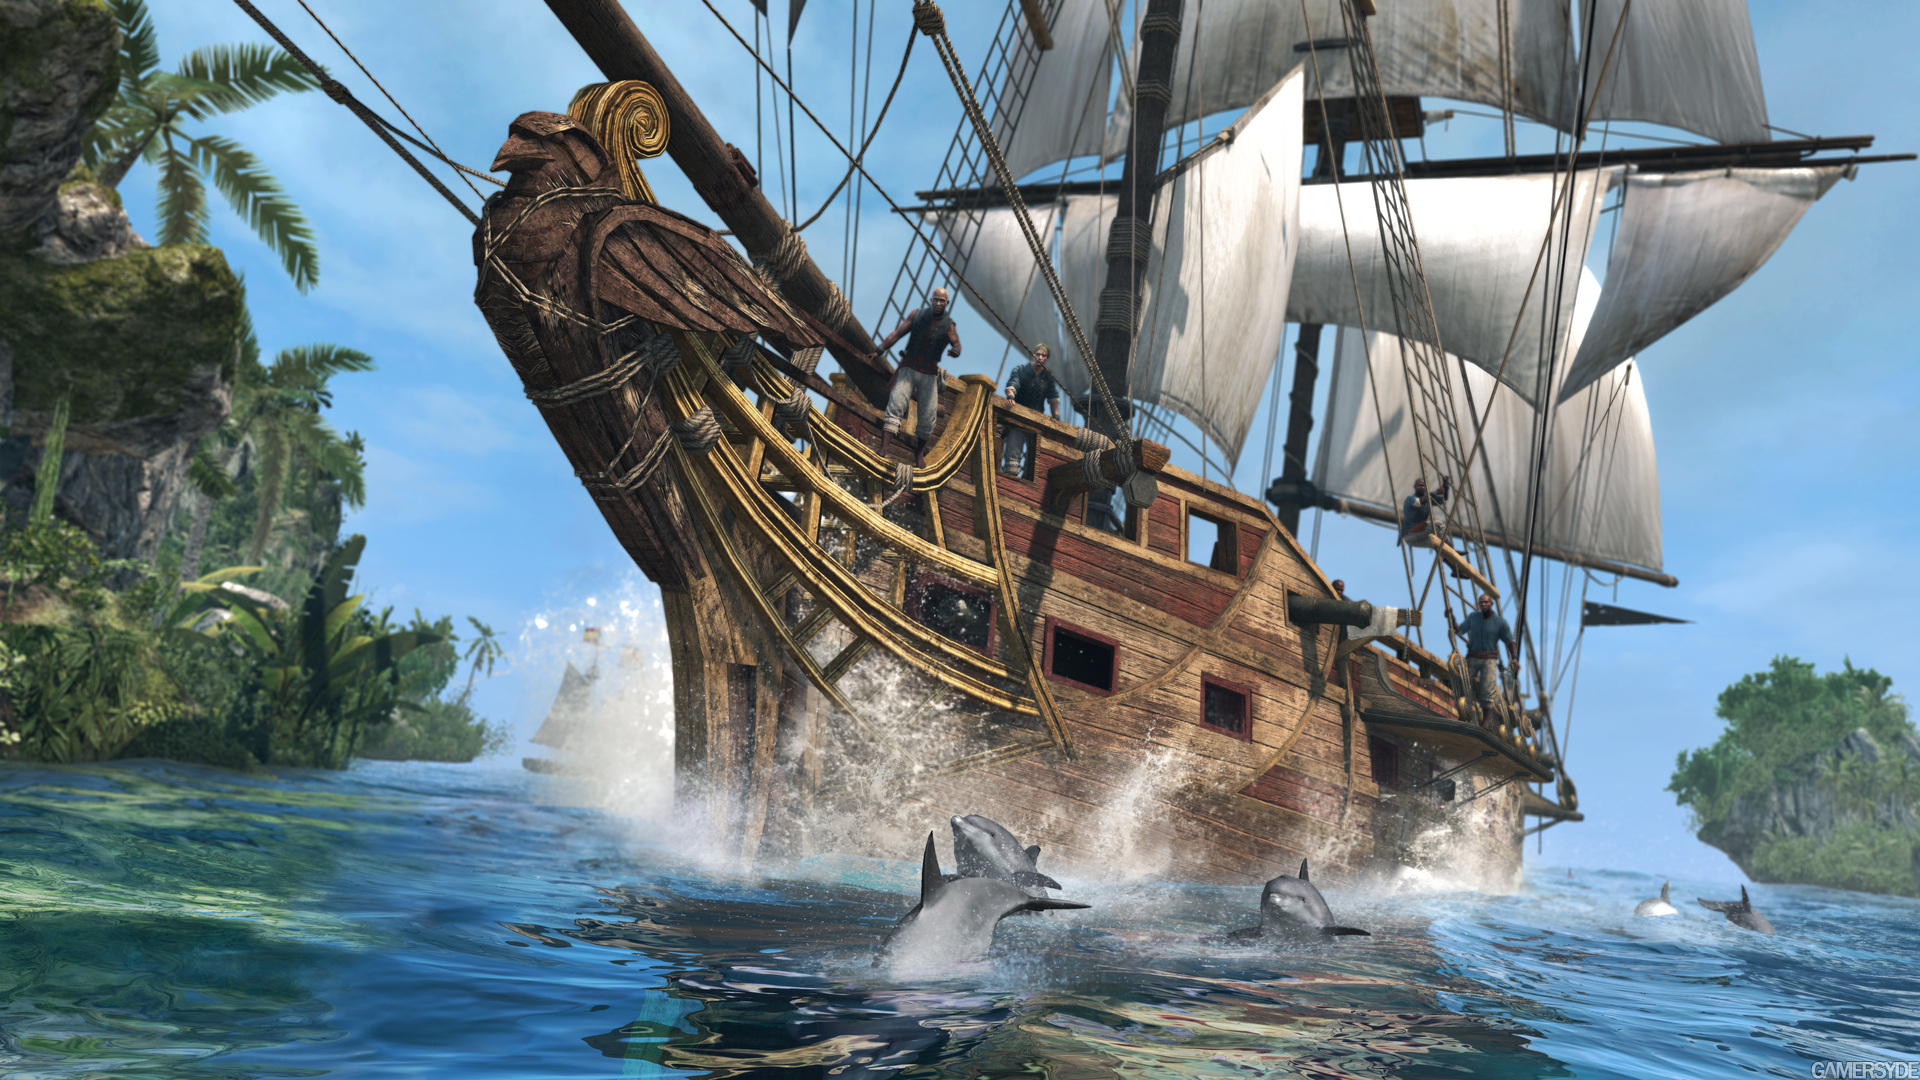 image assassin s creed iv black flag 22909 2670 0002 Gamescom 2013:تصاویری جدید از عنوان Assassins Creed IV:Black Flag منتشر شد